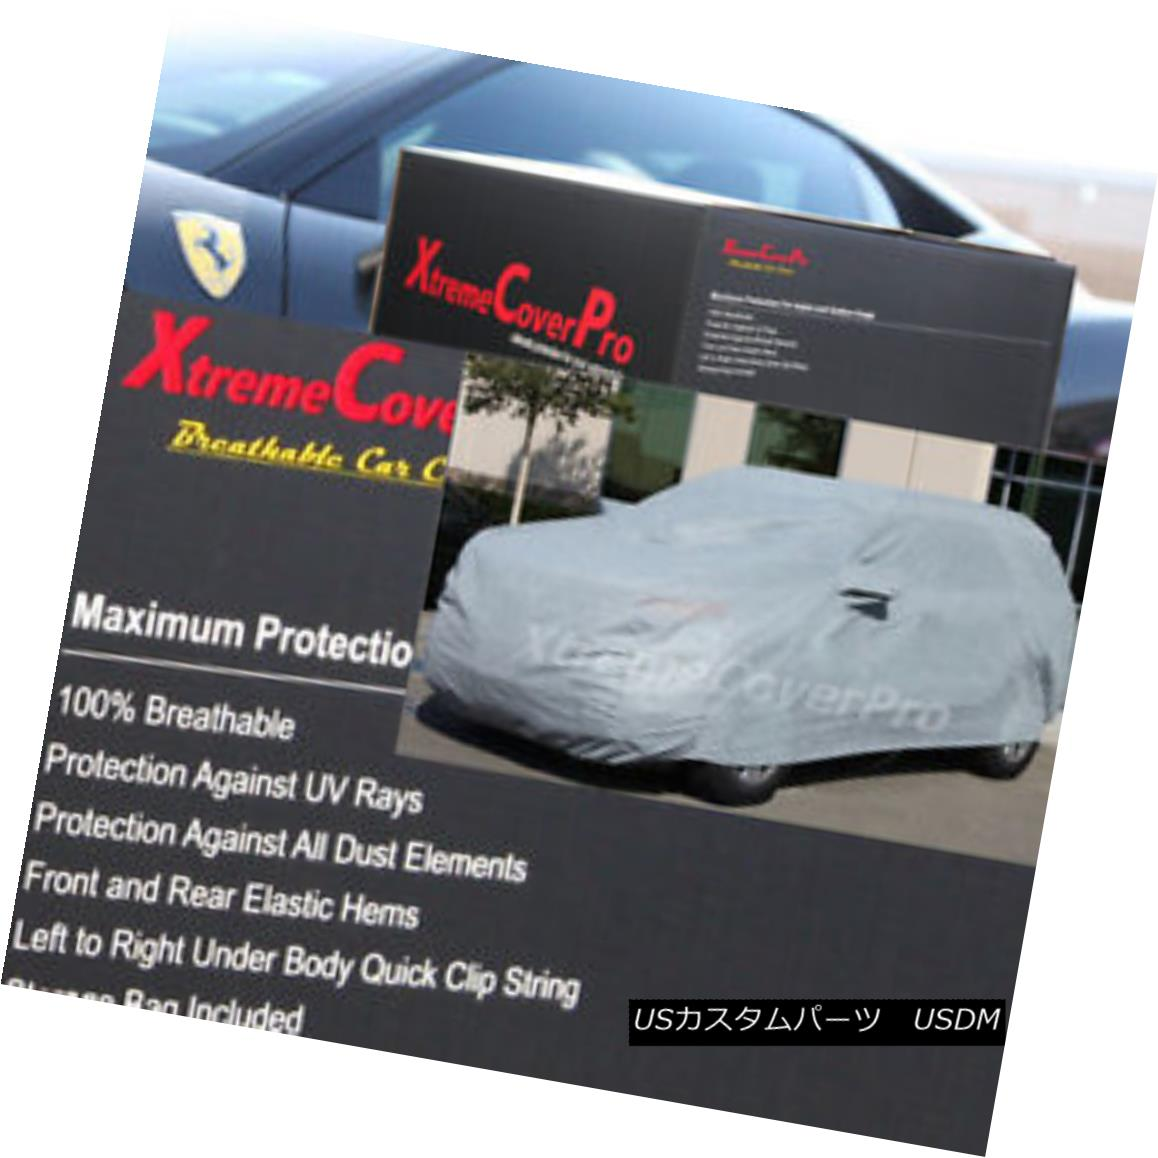 カーカバー 2013 Lincoln NAVIGATOR non-L Breathable Car Cover w/MirrorPocket 2013 Lincoln NAVIGATOR MirrorPocketを搭載した非Lの通気性の車カバー